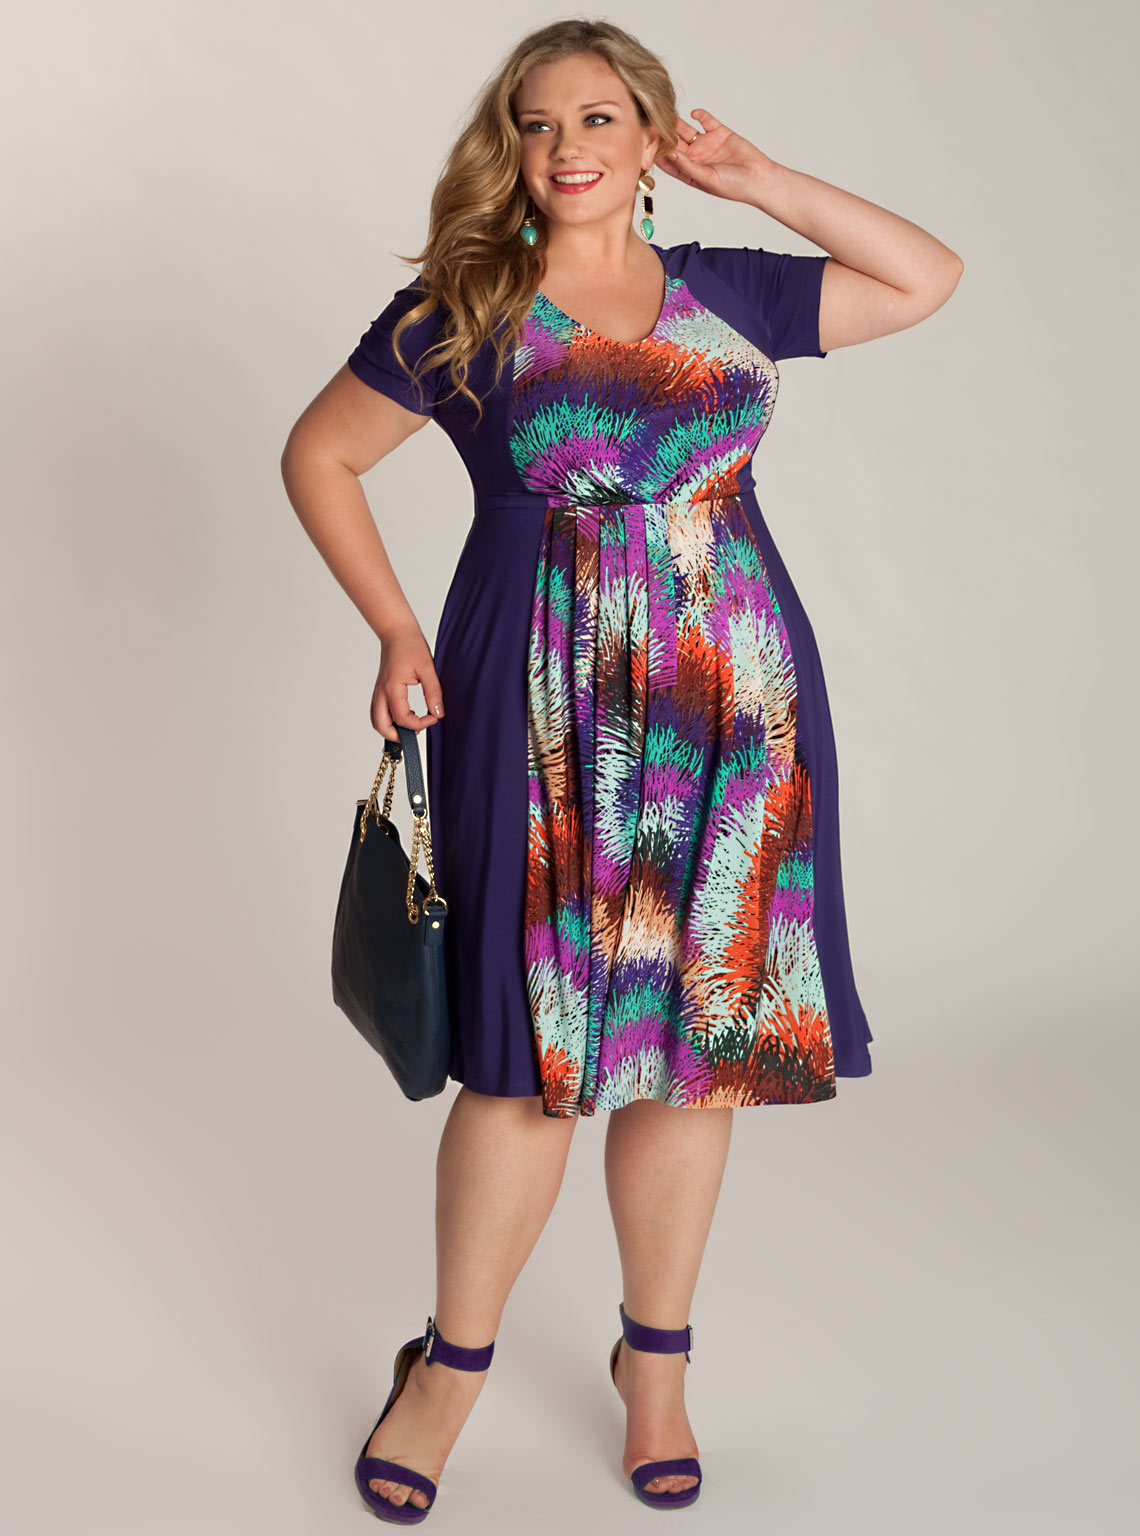 Plus Size Womans Clothes